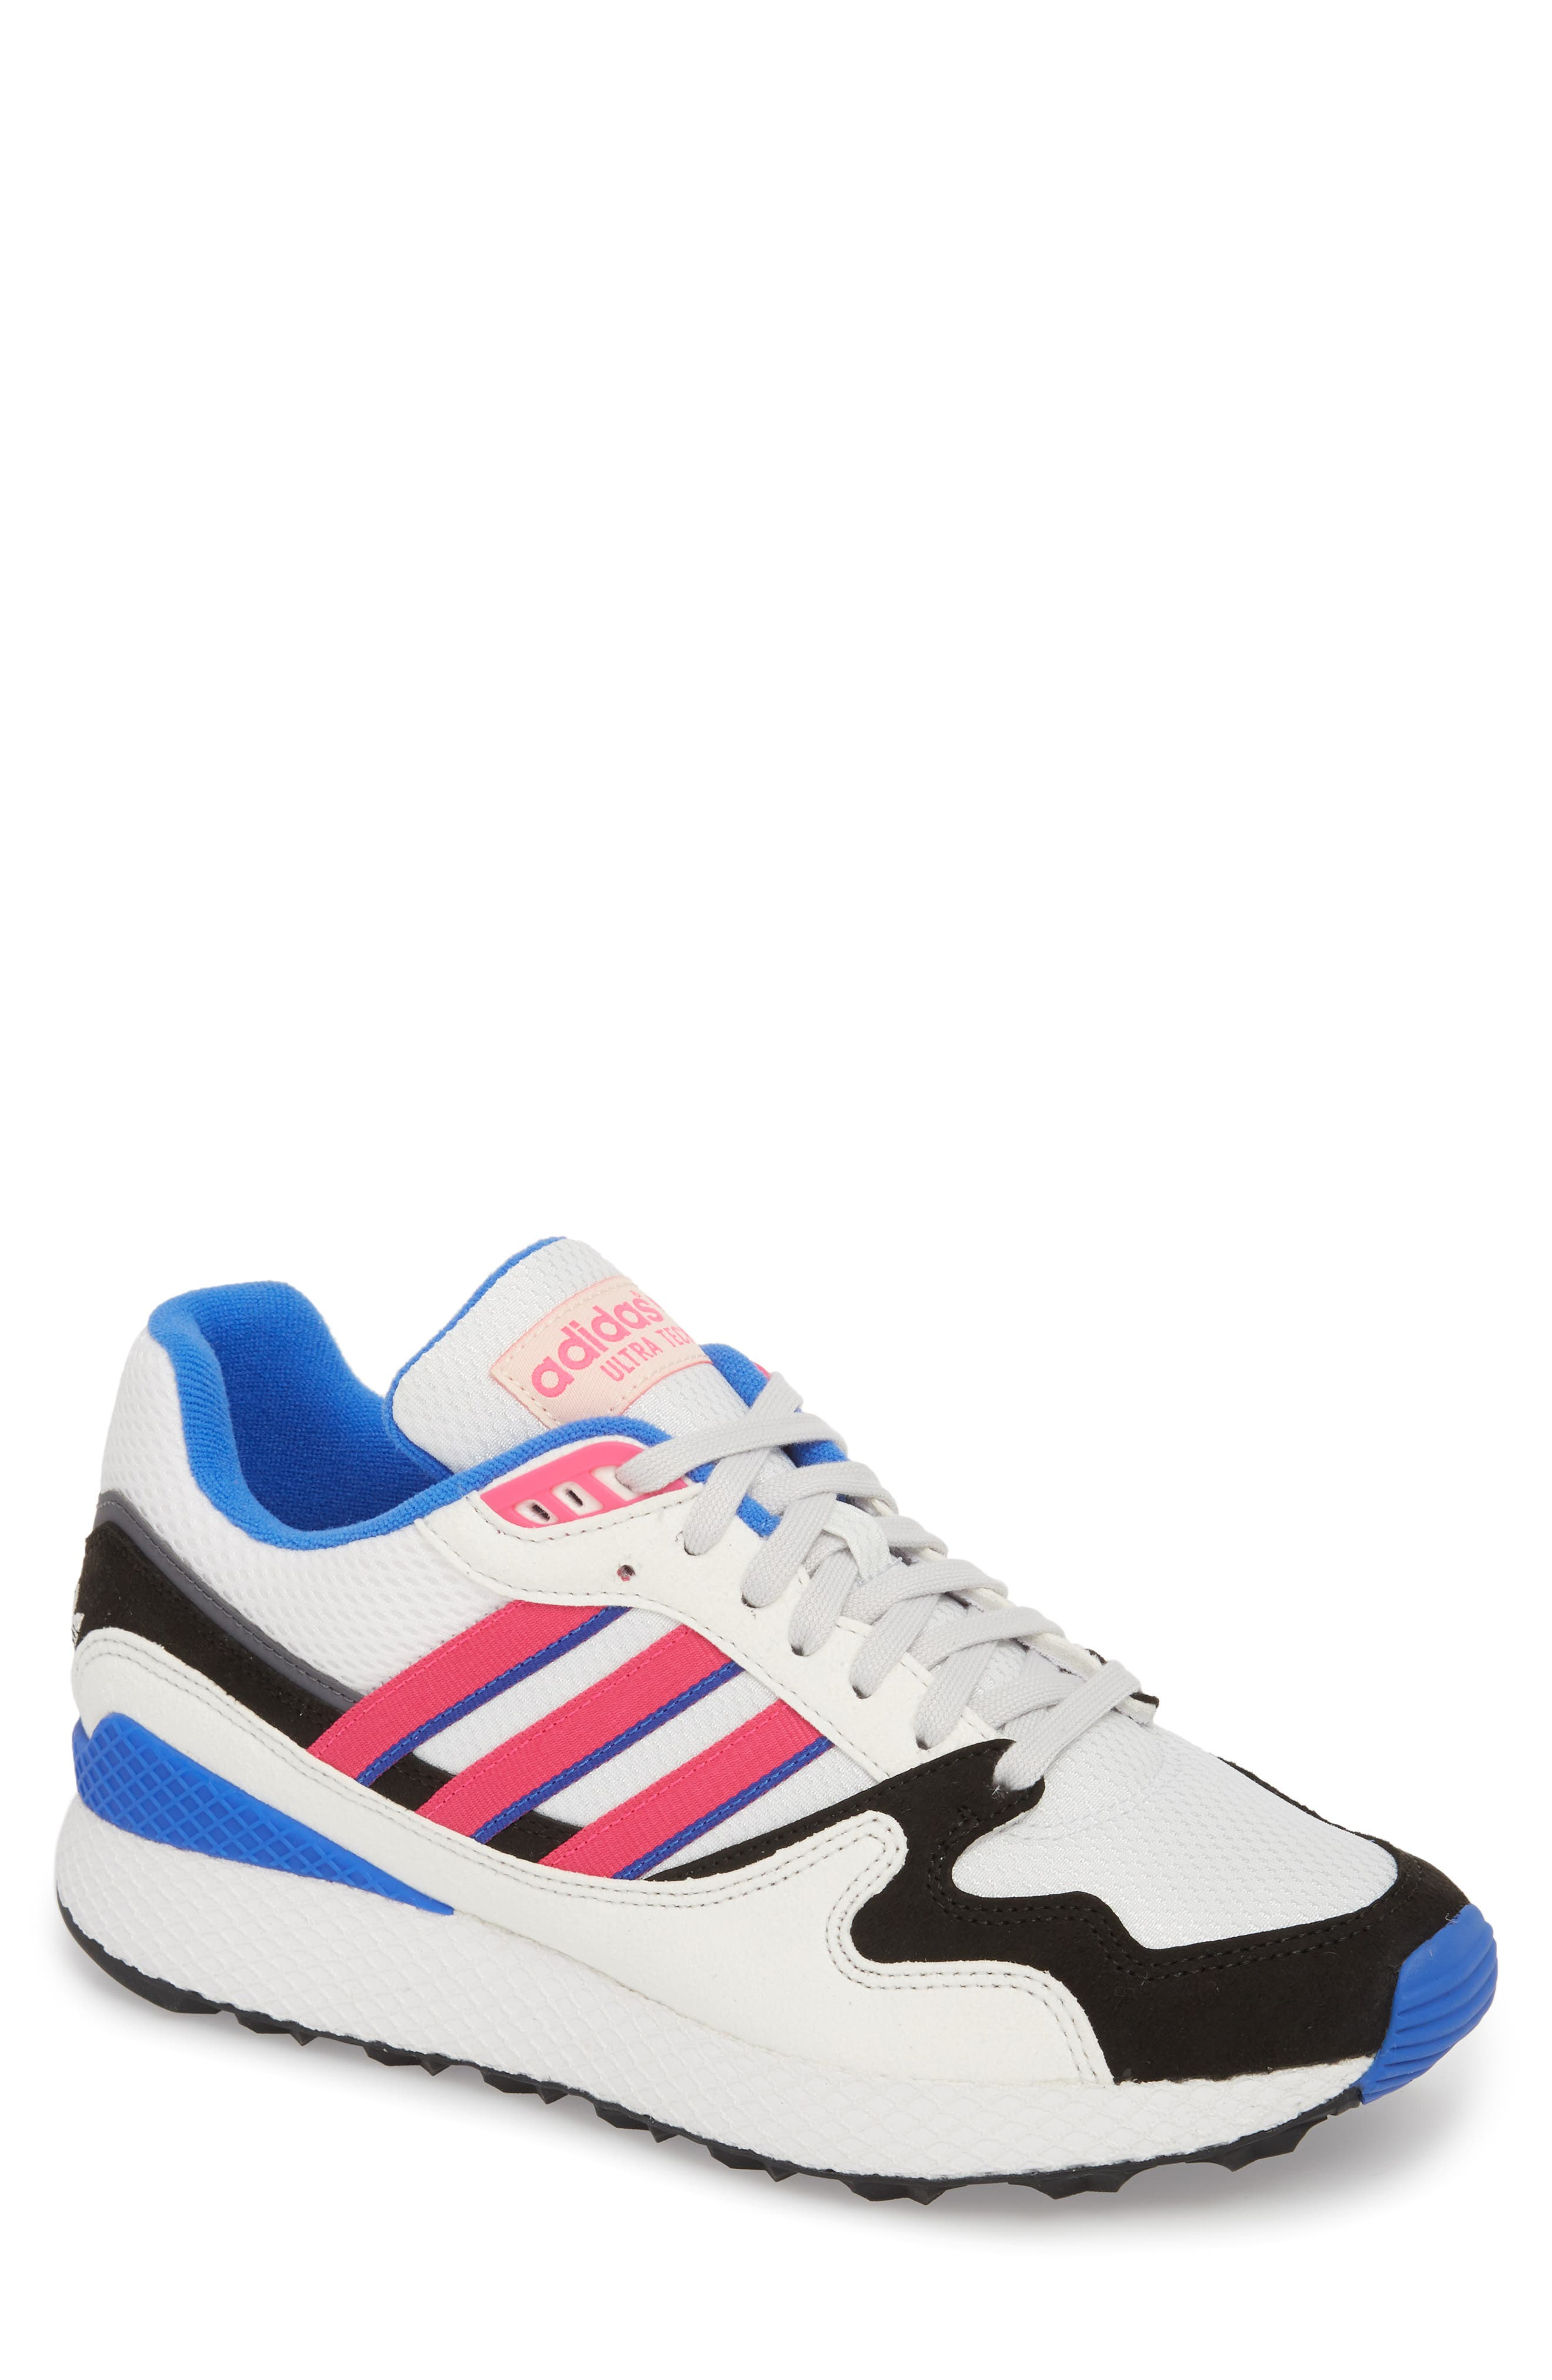 Forest Grove Ultra Tech Sneaker,                         Main,                         color, Crystal White/ Pink/ Black